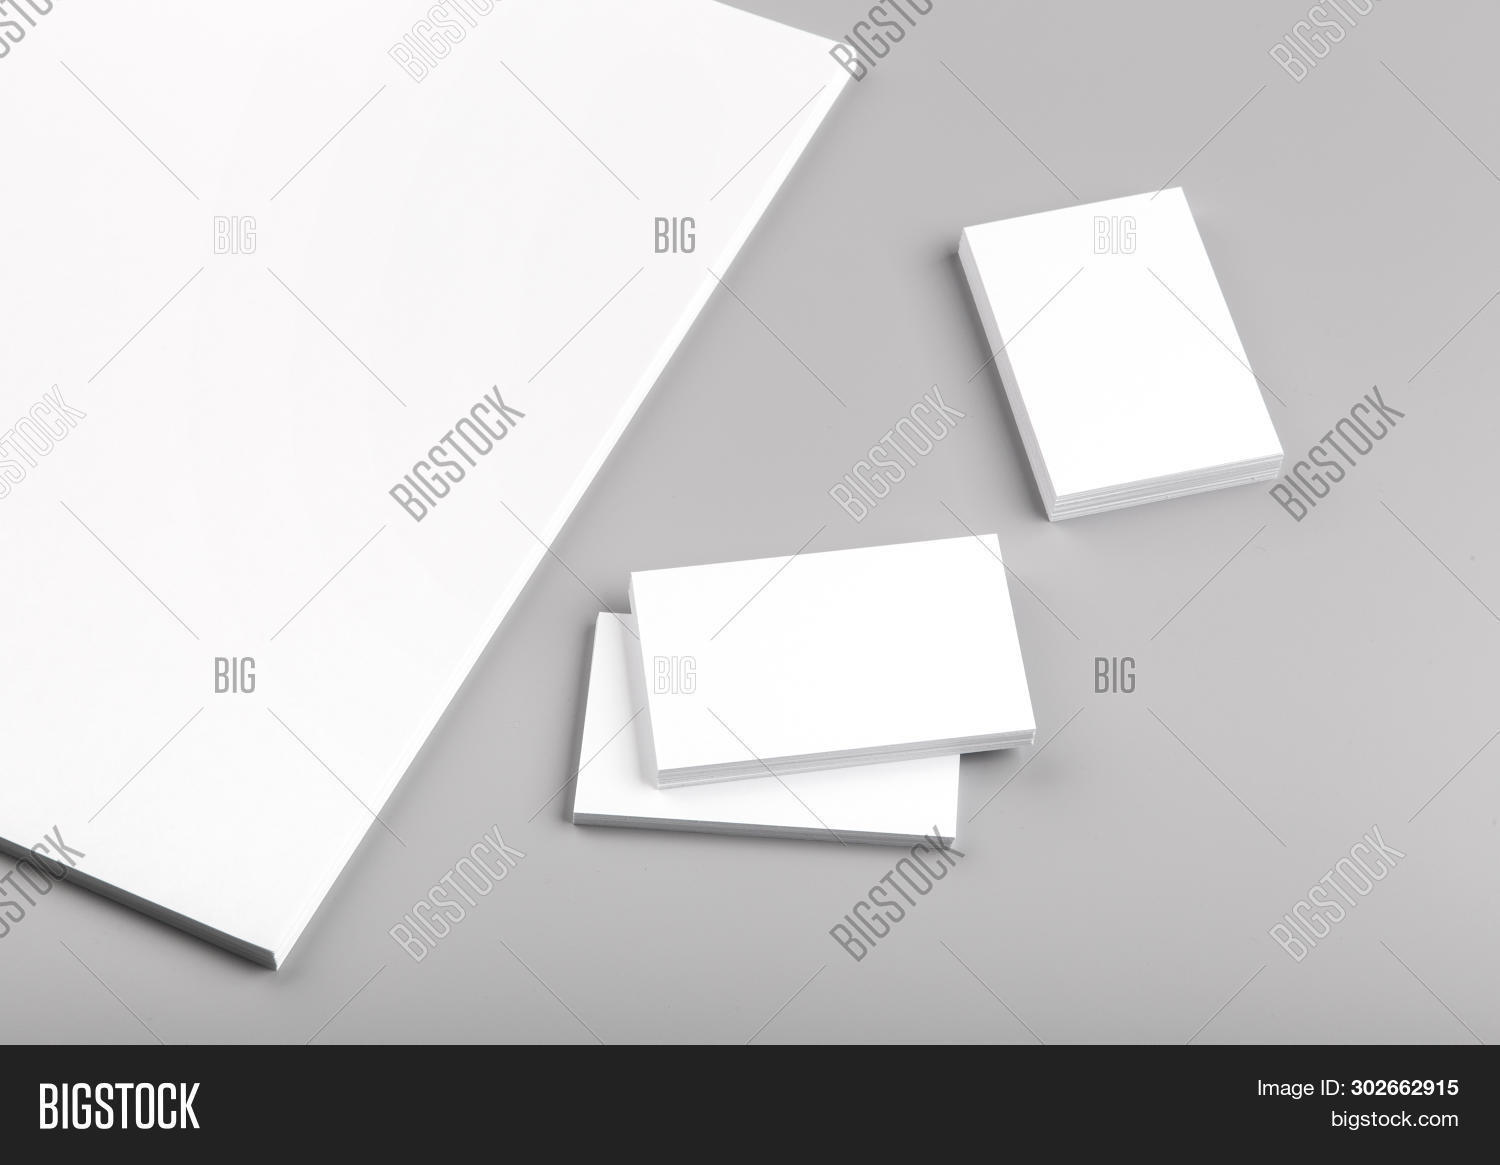 Blank,Communication,Corporate,Document,Group,Paper,Style,background,brand,branding,business,card,copy,design,desktop,empty,fake,gray,guideline,id,identity,isolated,letterhead,mask,mock,mock-up,mockup,nobody,object,of,order,pile,portfolio,premium,print,set,sheet,space,stack,stationary,stationery,template,texture,up,visual,white